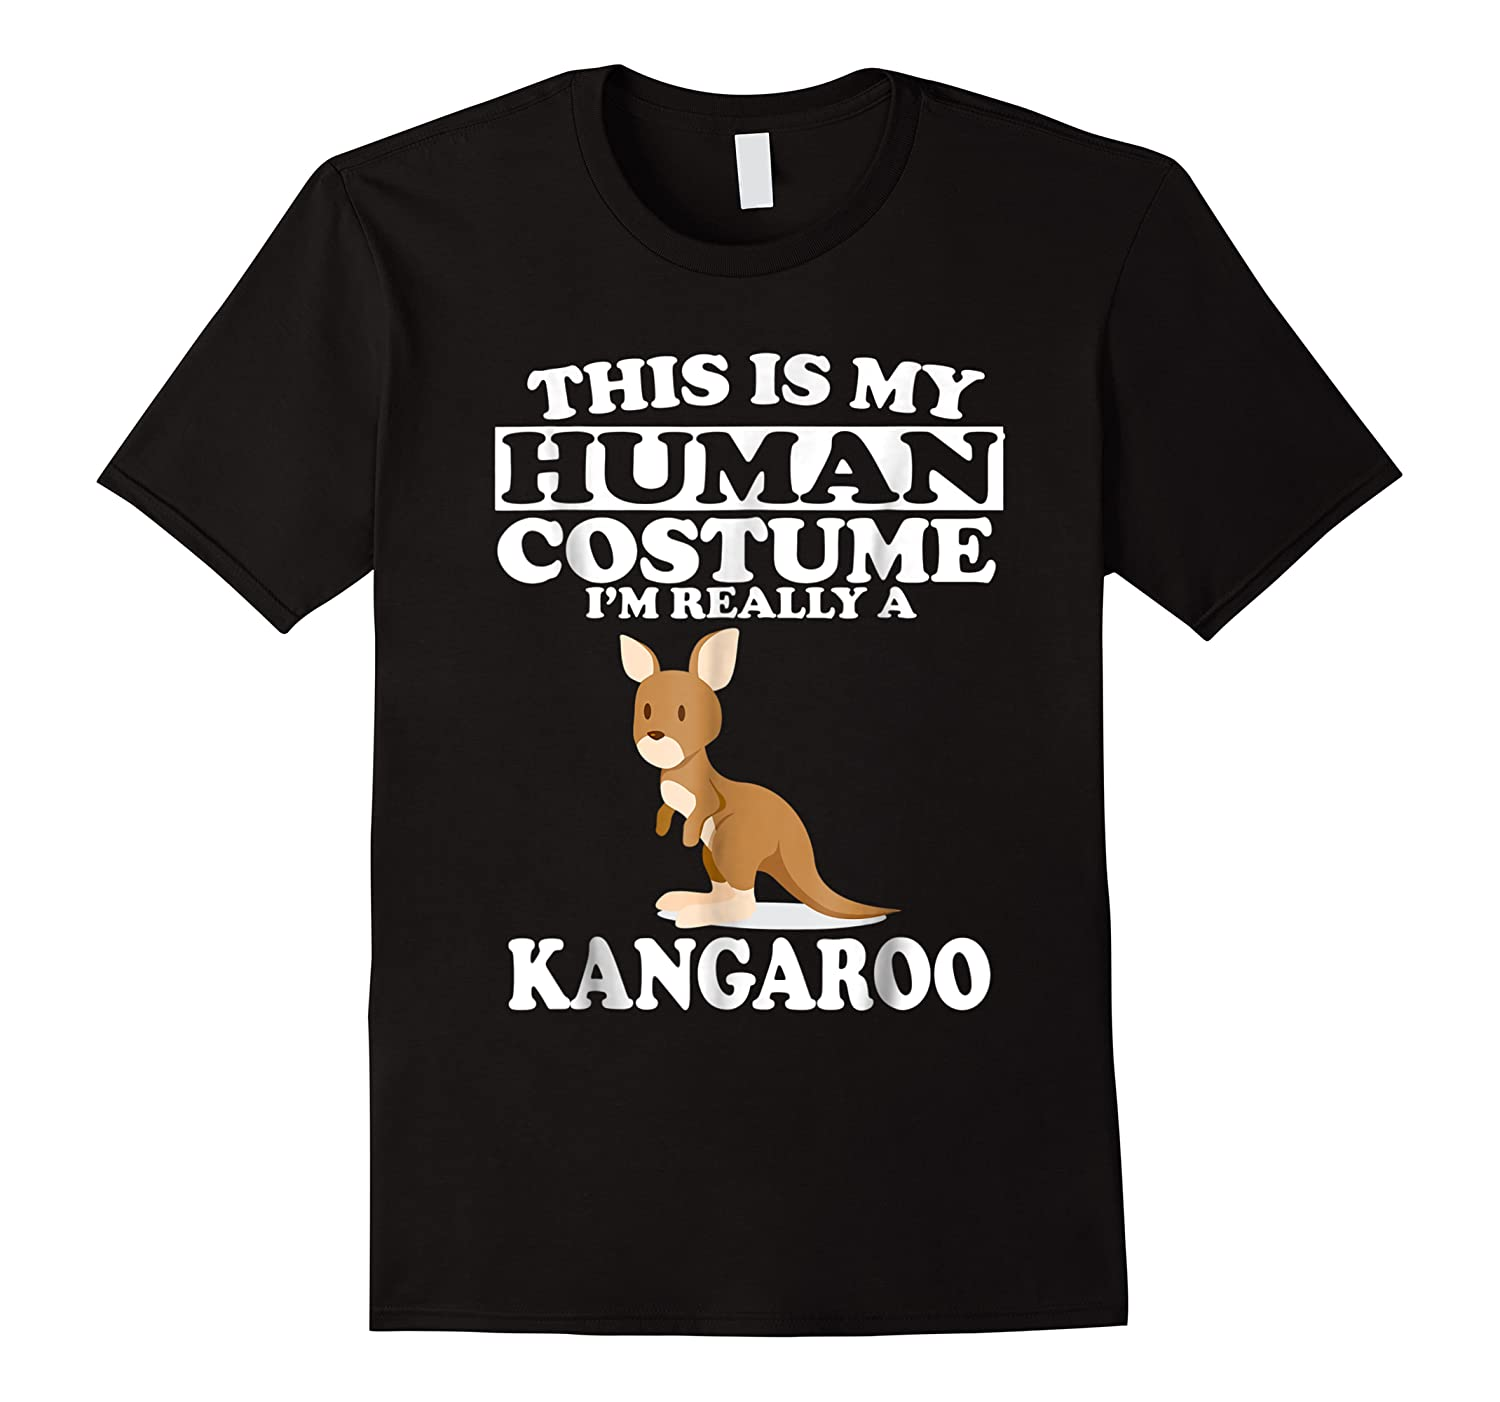 This Is My Human Costume I'm Really A Kangaroo Funny Shirts